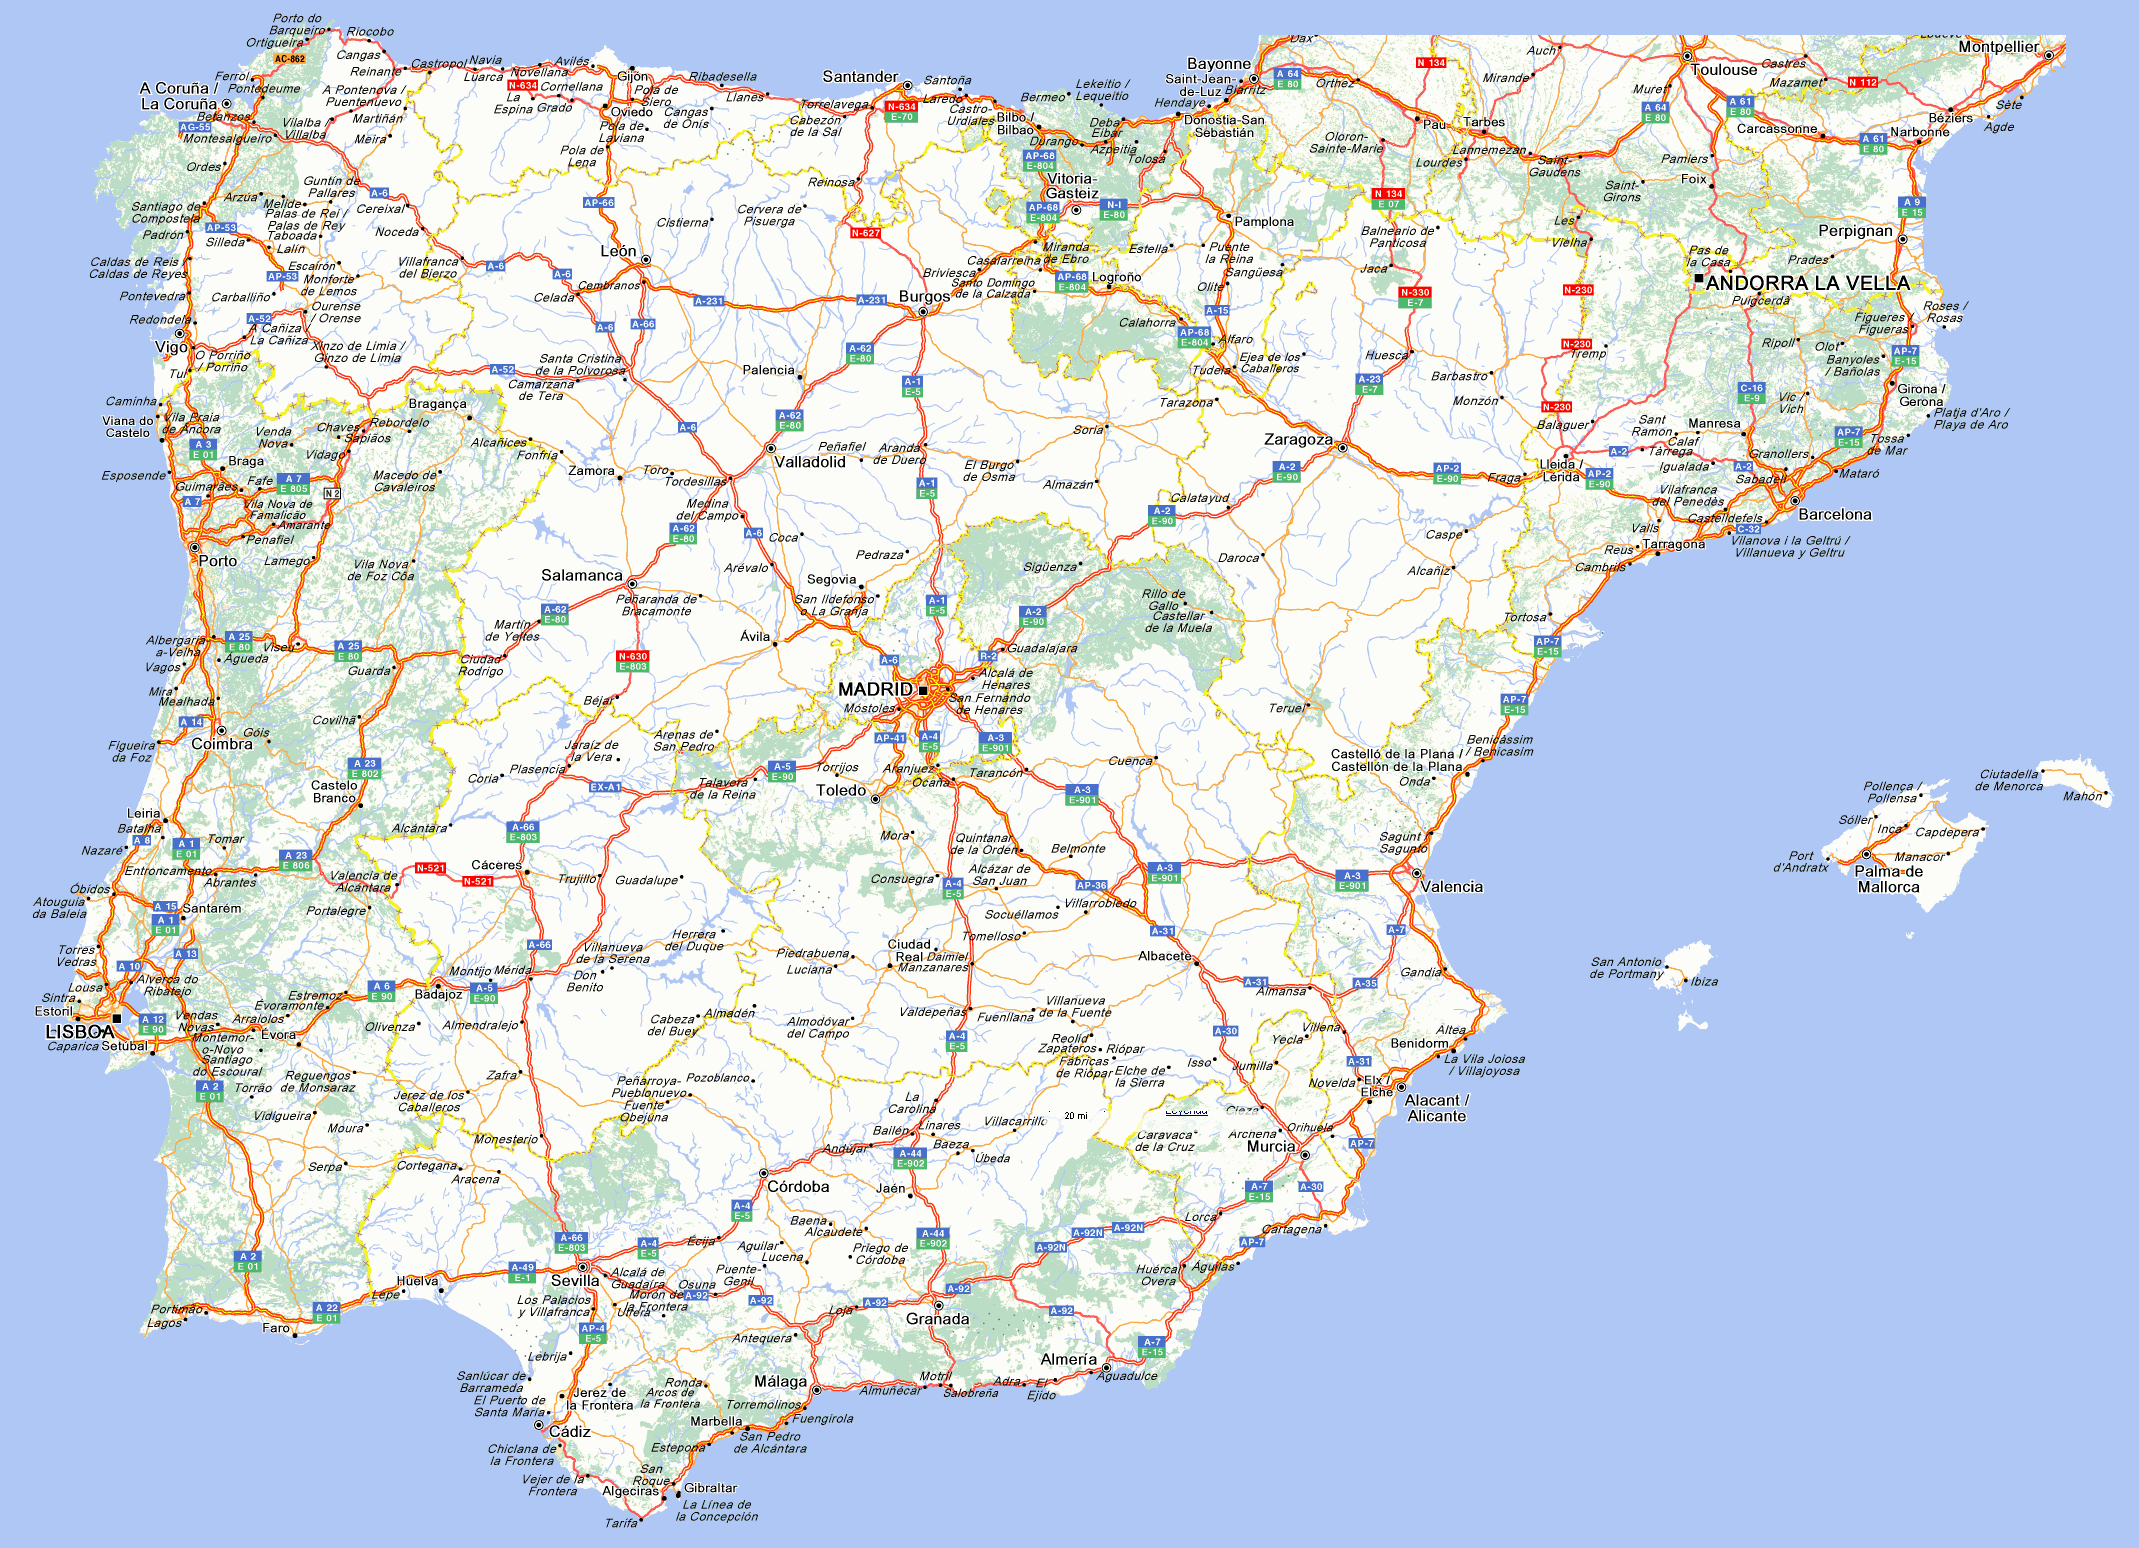 map of portugal cities with Mapa De Carreteras De Espana Y Portugal M112 on Showpicture besides Japonya Haritasi moreover Uruguay furthermore Leixoes Portugal together with Faro Olhao Portugal.